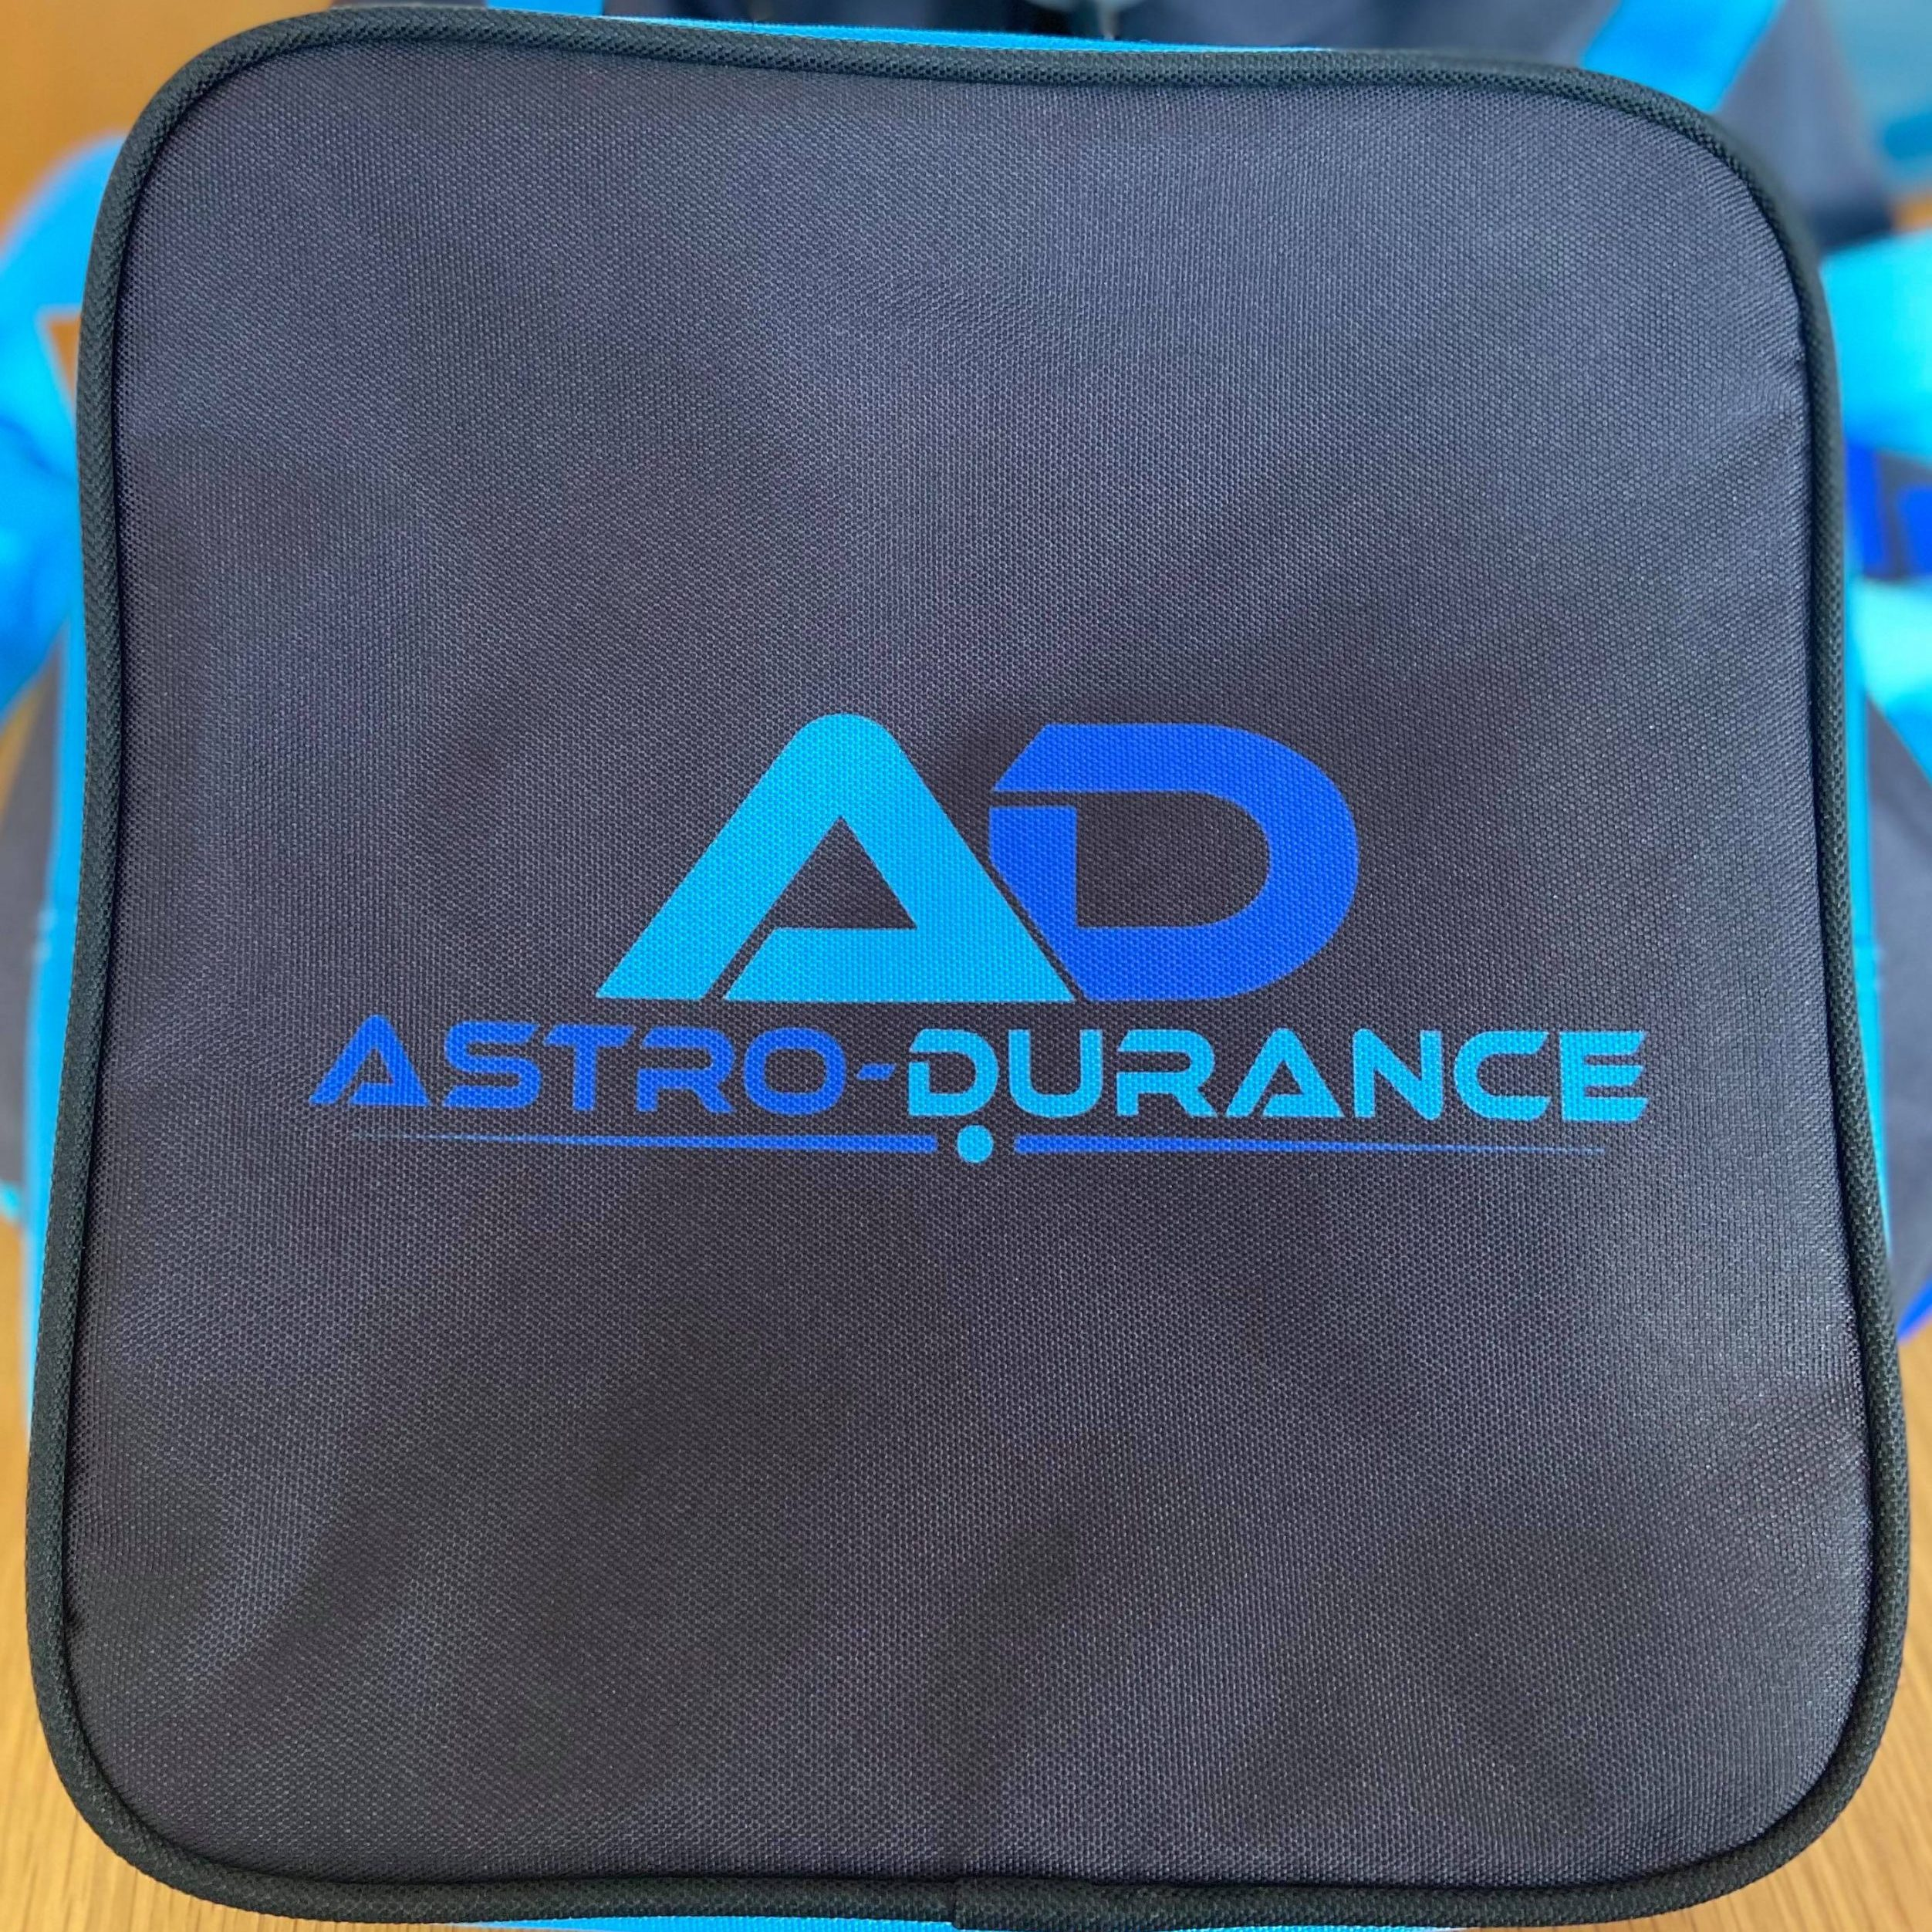 Astro Durance, bungee fitness, bag, bungeecise, bungeefit, bungee workout, aerial workout, aerial arts, coronavirus, covid-19, active engineering systems